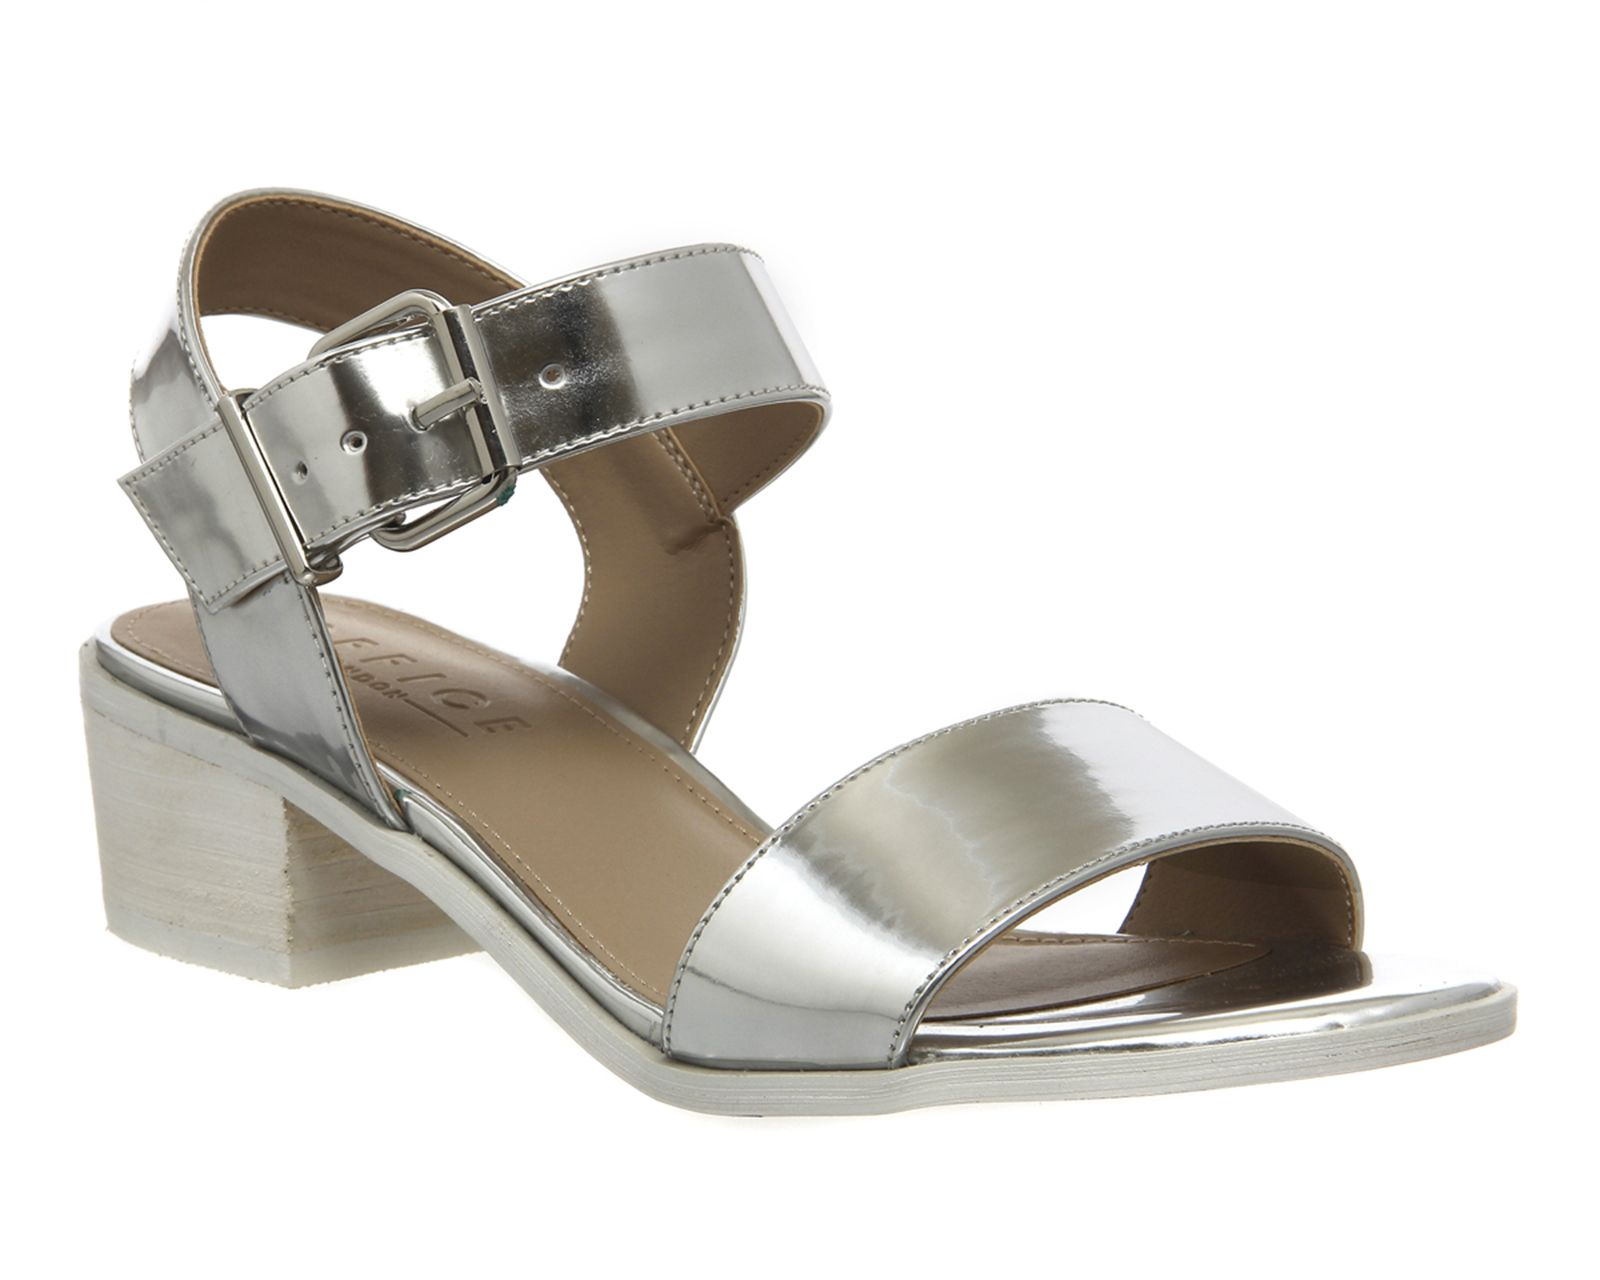 904301d6df6 Buy Silver Mirror Office Williamsburg Block Heel Sandals from OFFICE.co.uk.